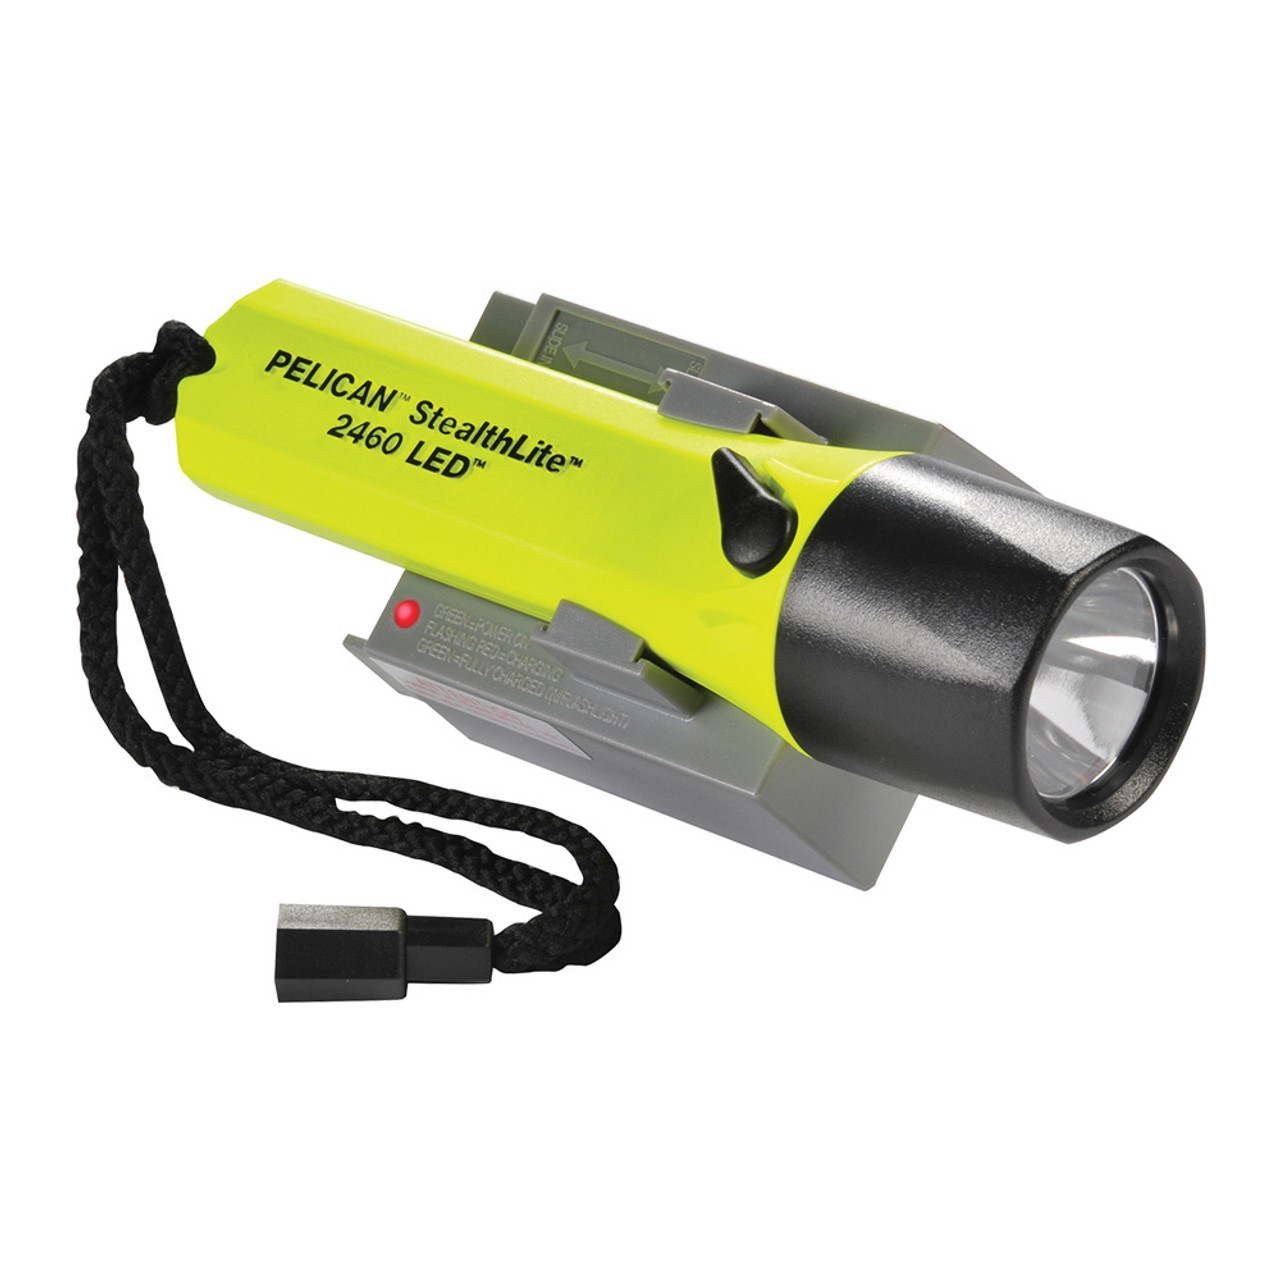 Pelican StealthLite™ LED Flashlight with Rechargeable Battery Pack, Waterproof, Available in Black or High Visibility Yellow 2460